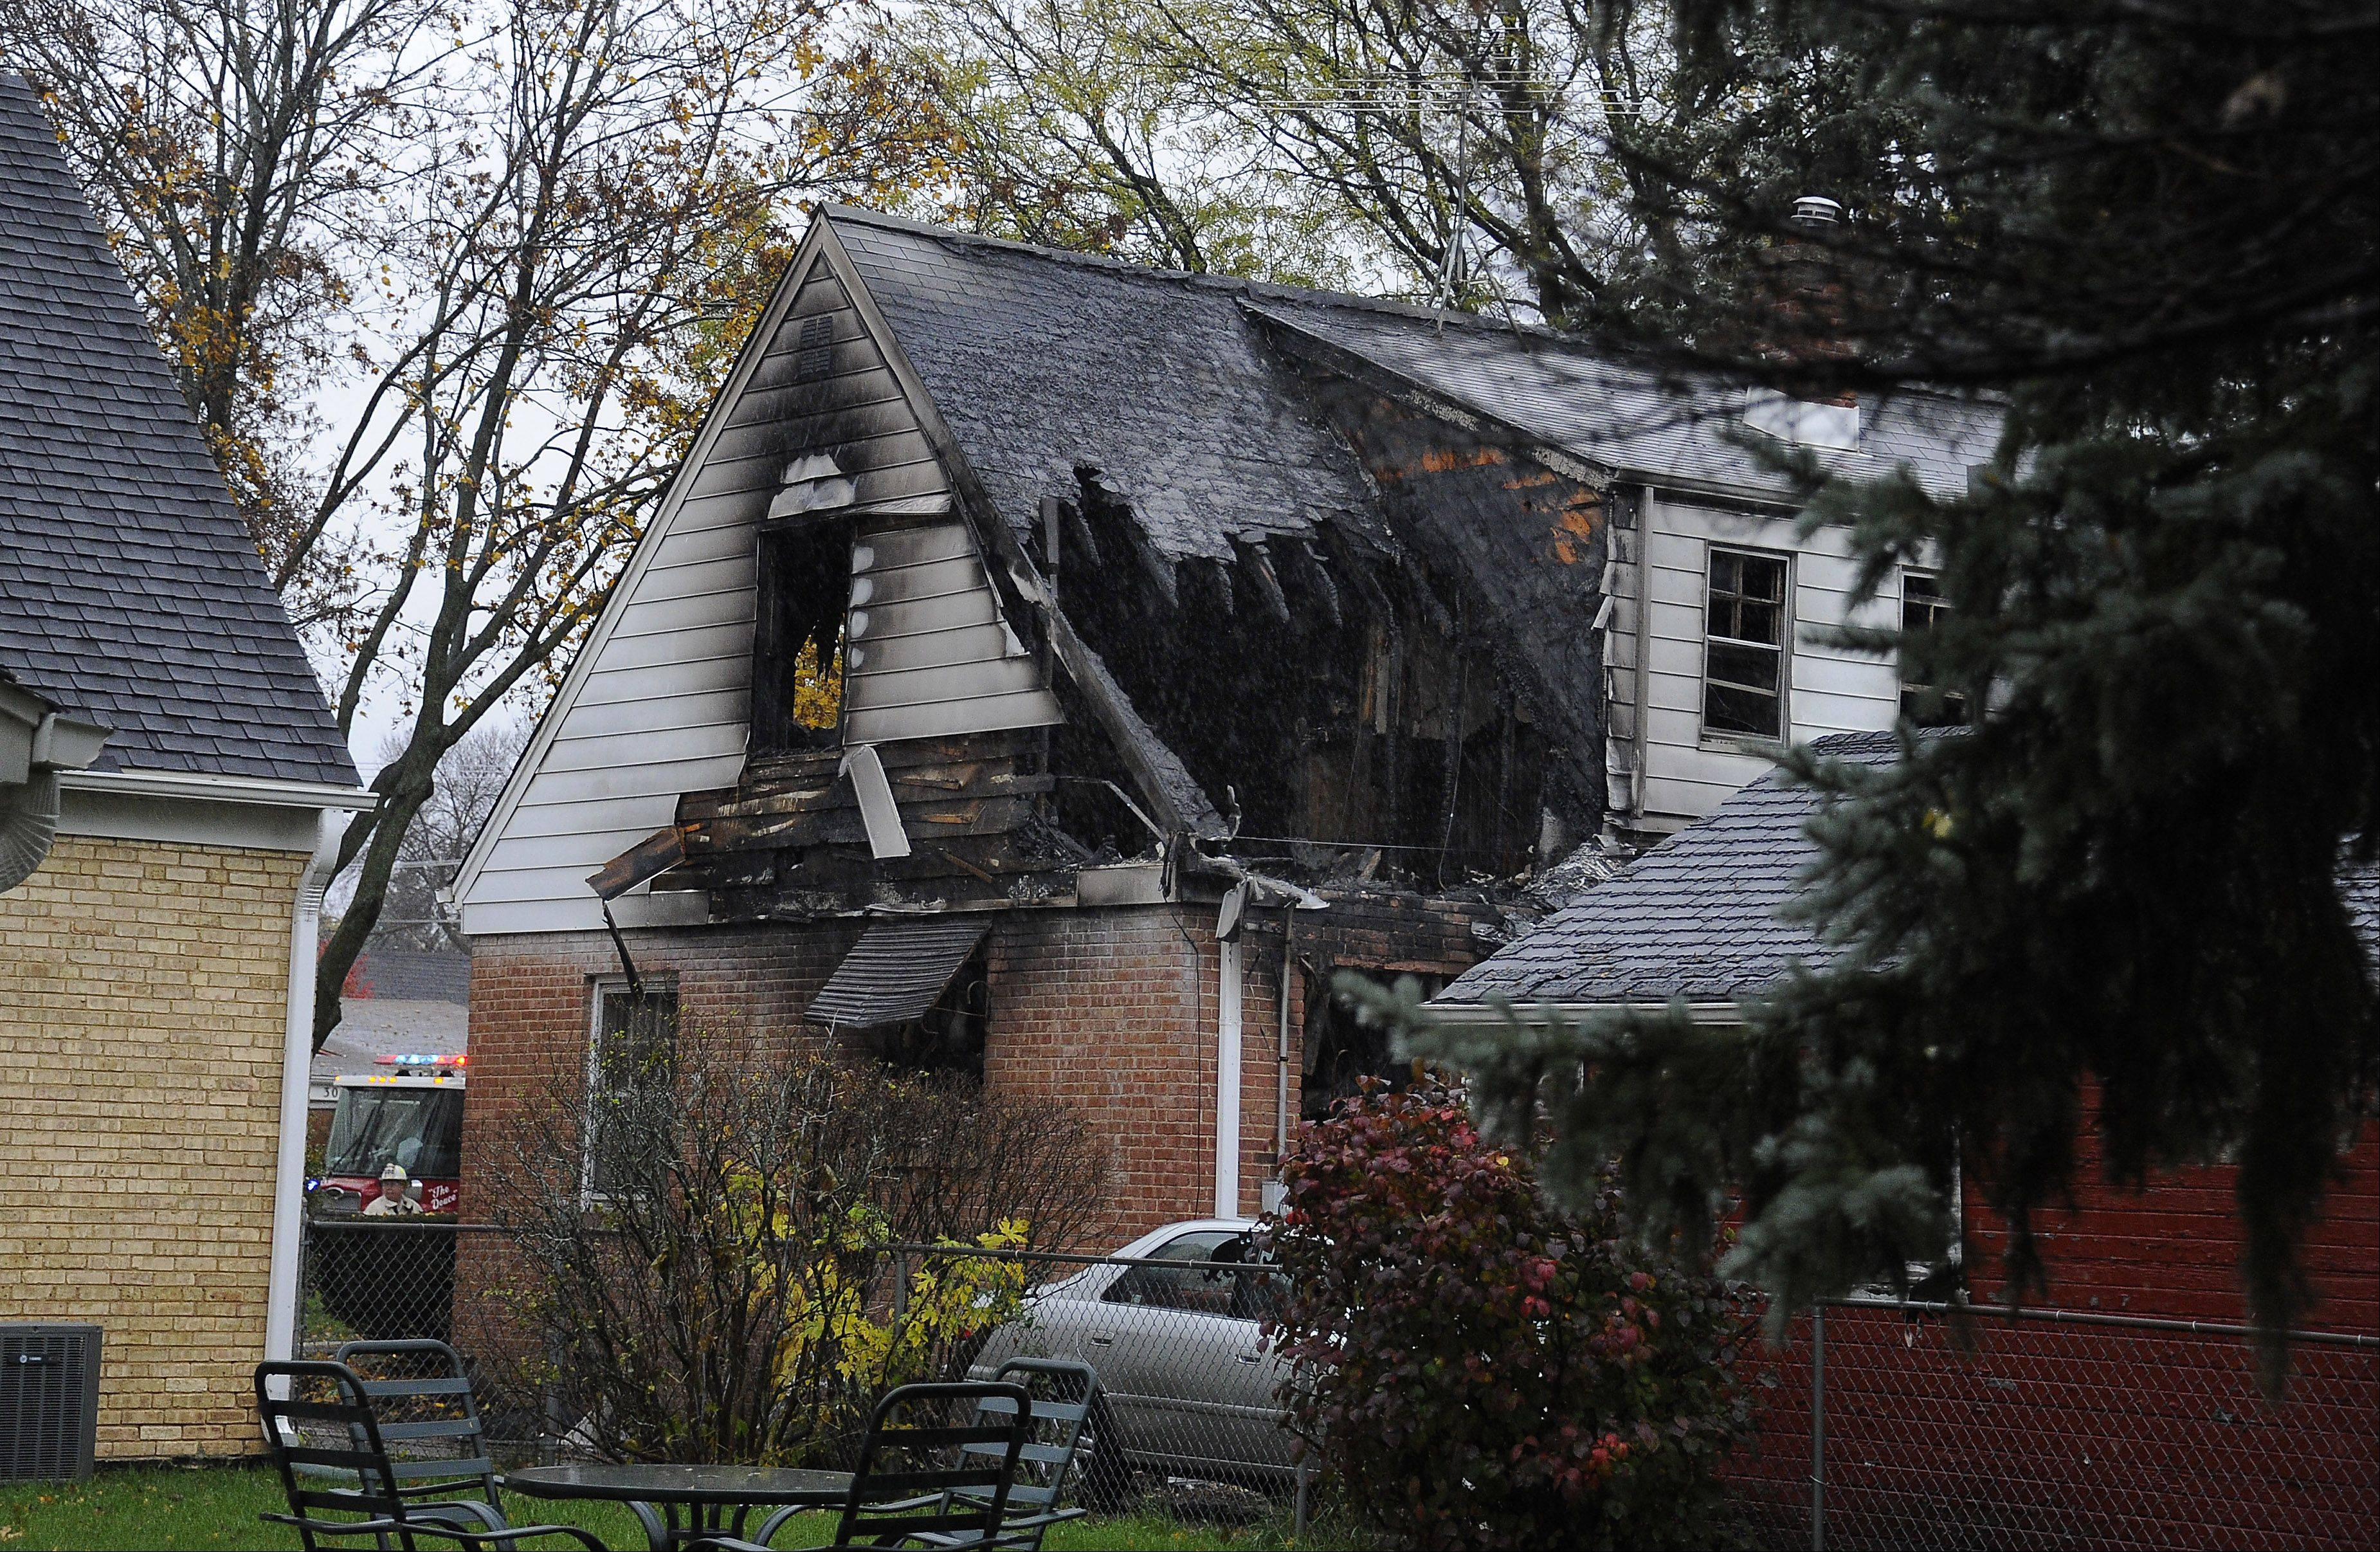 The identities of three women who were killed in an Arlington Heights fire could be released today. Neighbors say they knew the owner of this house as a friendly woman who enjoyed kids' Halloween costumes.